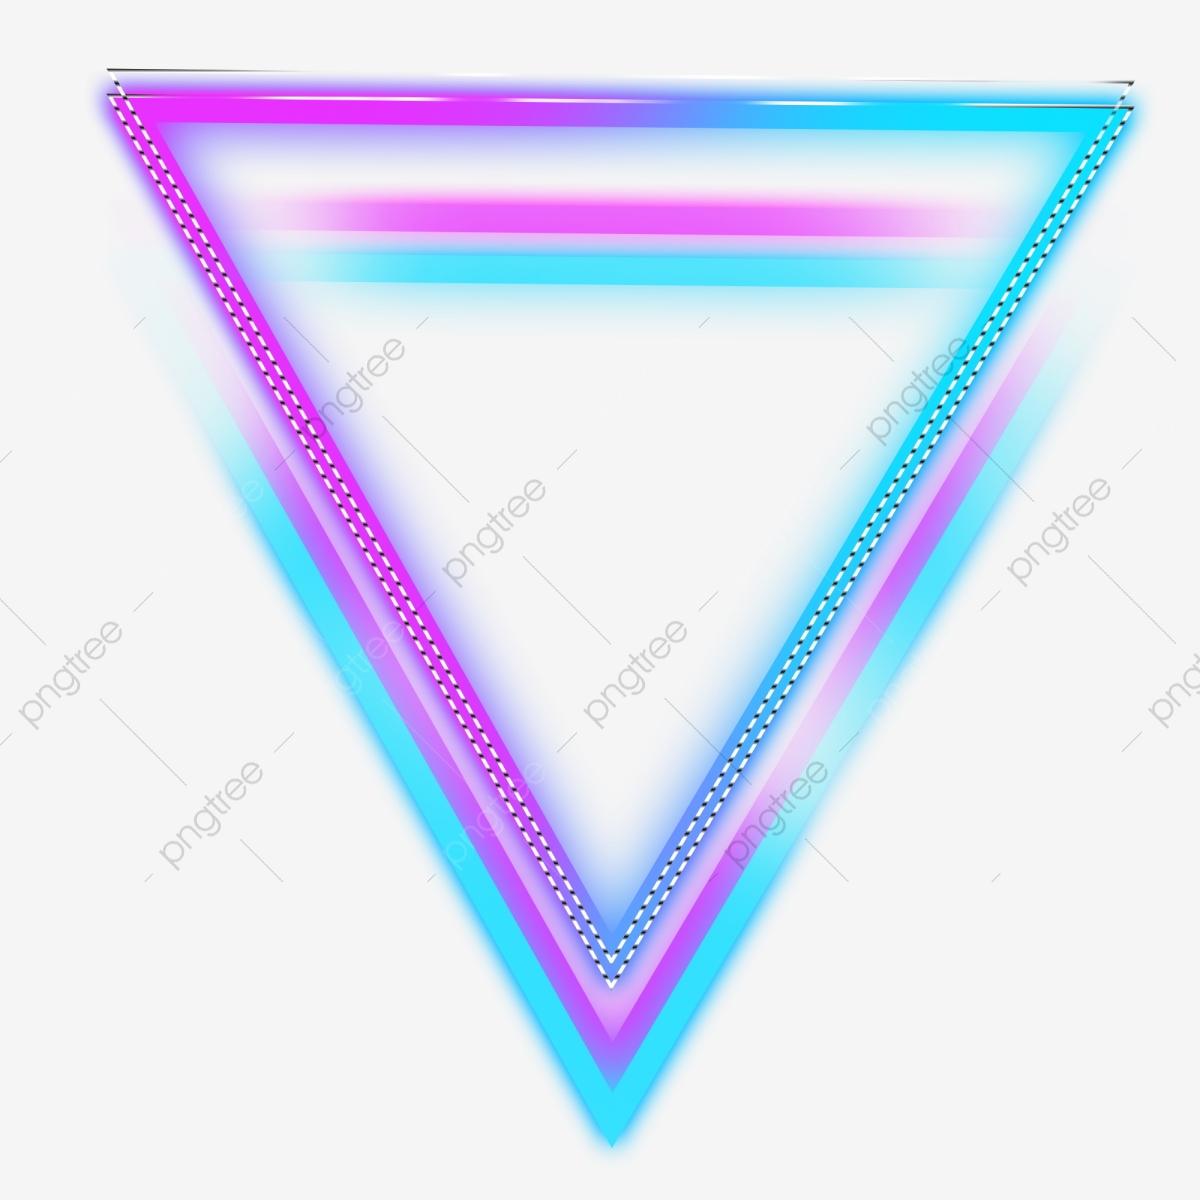 Triangle transparent. Neon color glowing border